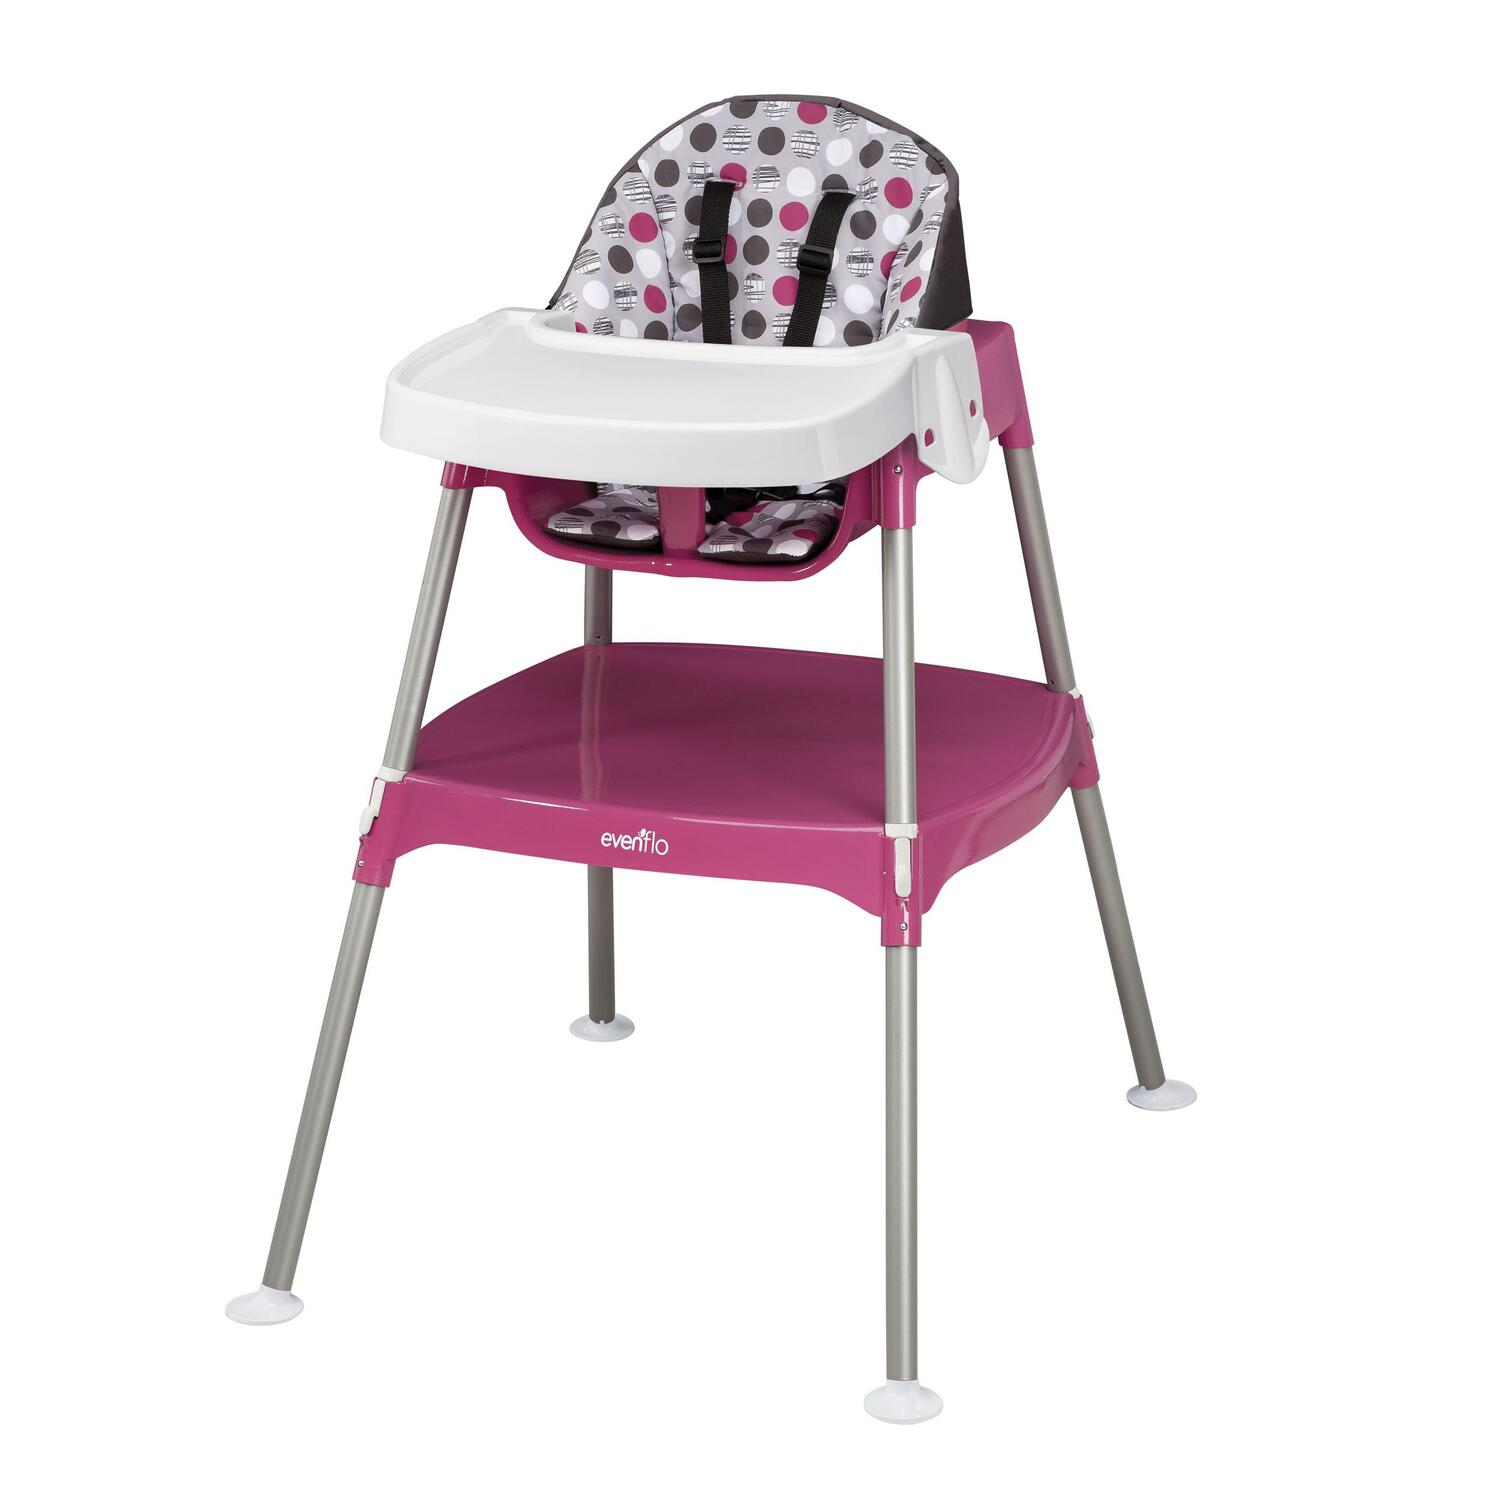 evenflo convertible 3 in 1 high chair by oj commerce 53 99